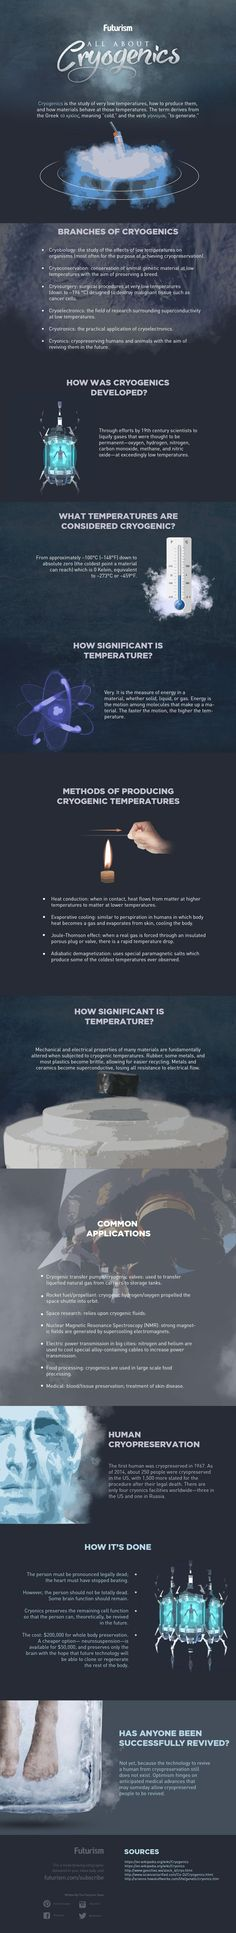 All About Cryogenics [INFOGRAPHIC] — You can do a lot of weird stuff with cryogenics. You can (we hope) someday use it to preserve space voyagers on immense journeys. You can use it for  power transmission. You can even chop someone's head off and cryopreserve it against the possibility of a future resurrection—which, when you think about it, really isn't weird at all.  — https://futurism.com/images/all-about-cryogenics-infographic/